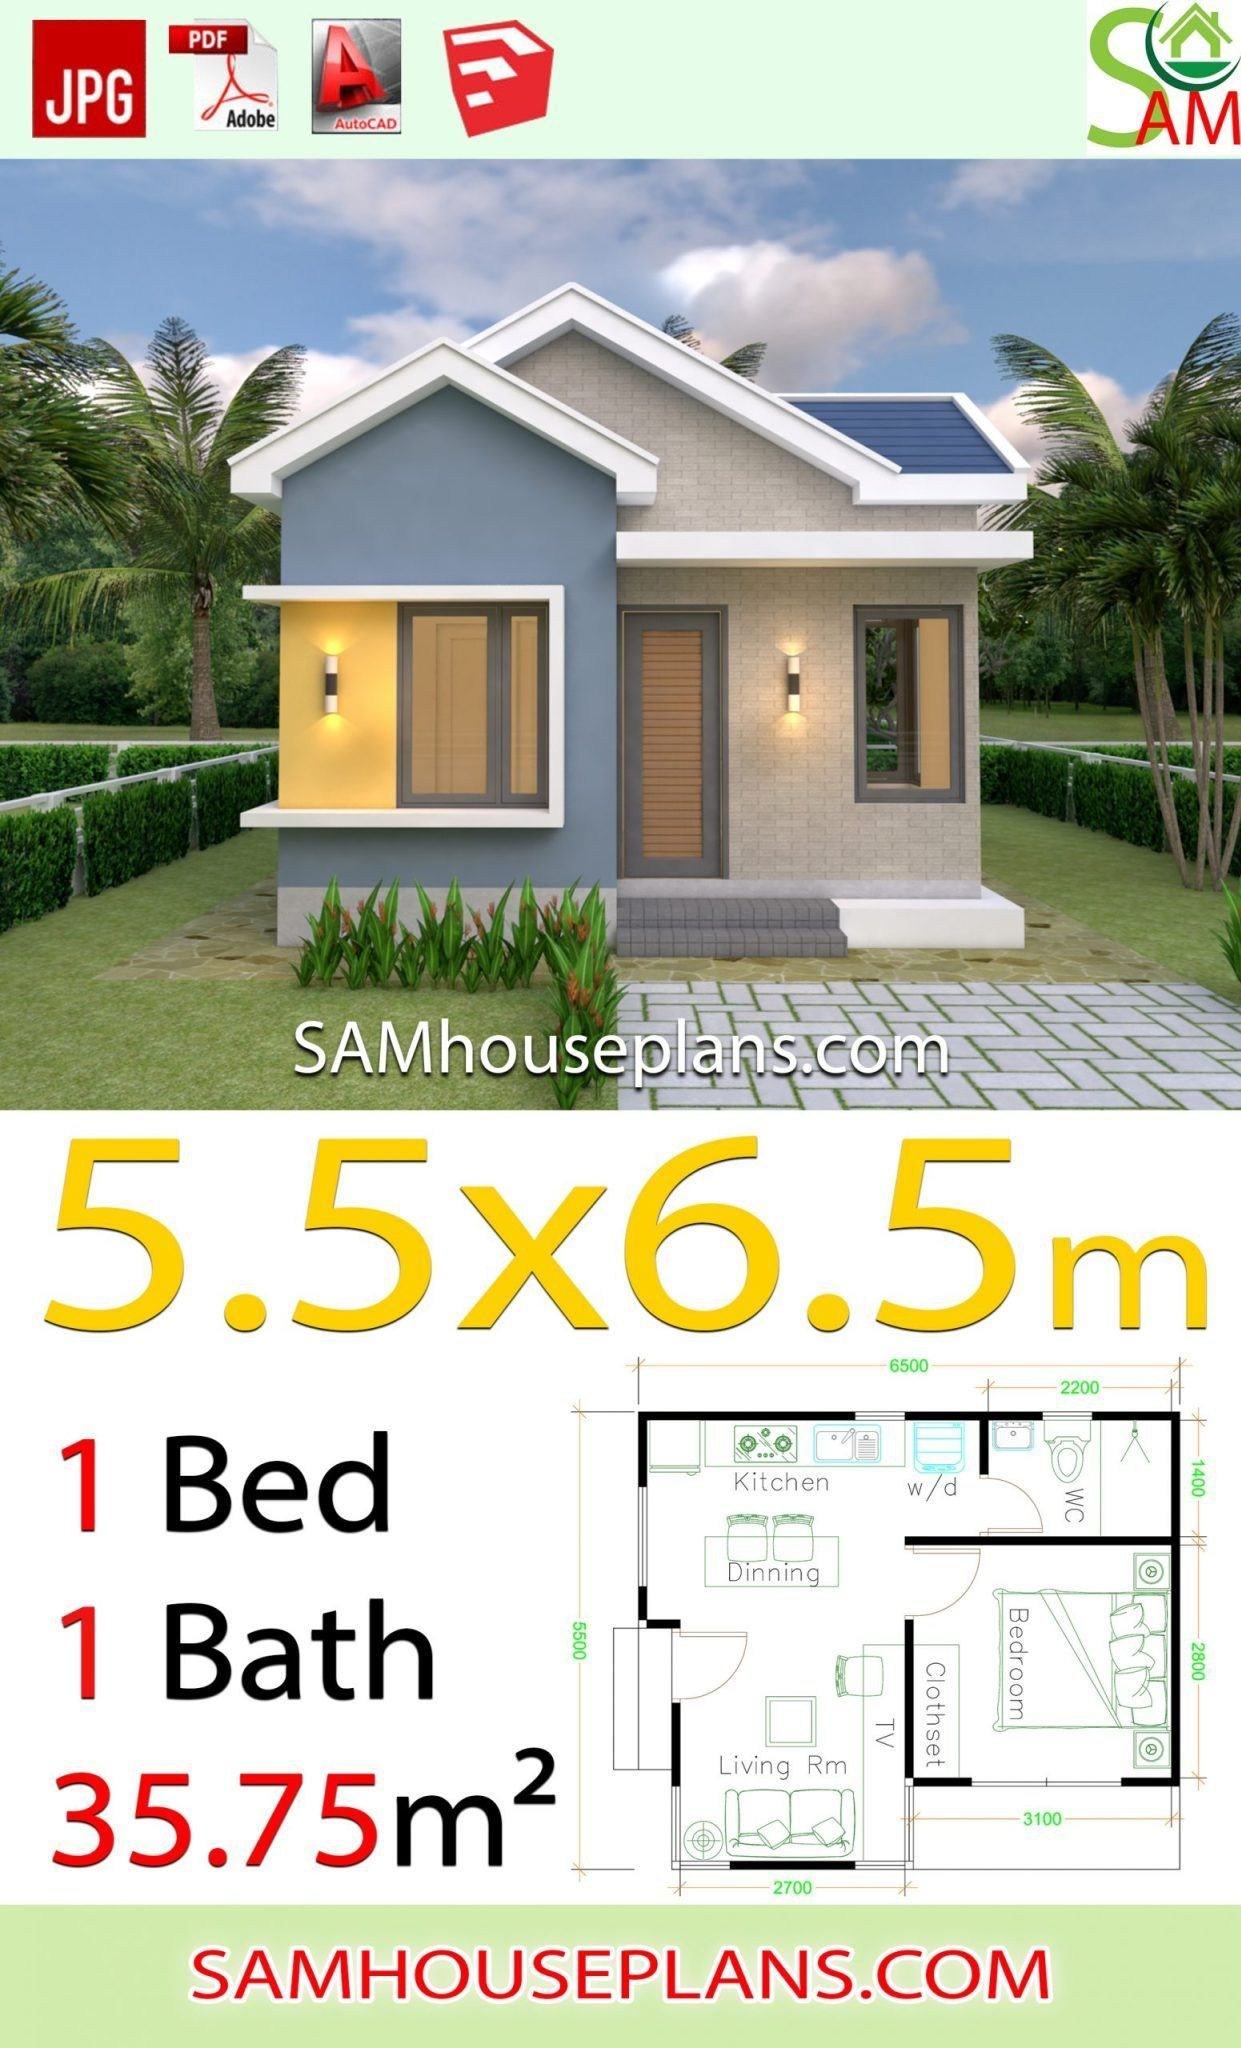 Gableroof Homedesignplans Narrowhouseplans Tvinkitchen Gardenliving Modernhousedesign Gra In 2020 Small House Architecture Simple House Design Small House Design